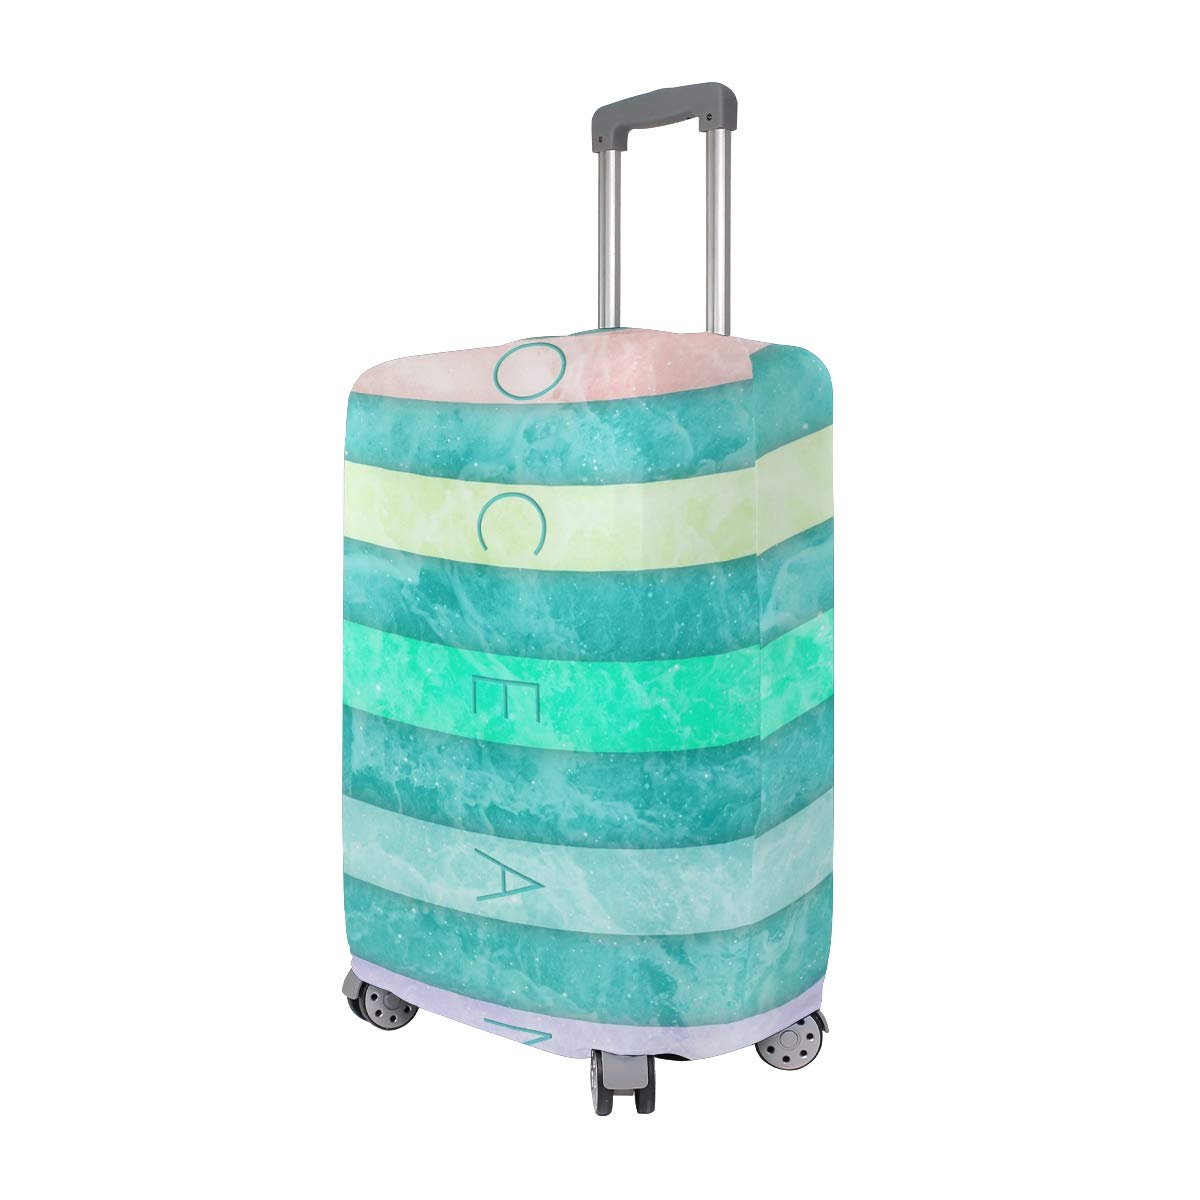 Travel Luggage Cover Ocean Stars Background Abstract Suitcase Protector Fits 22-24 Inch Washable Baggage Covers